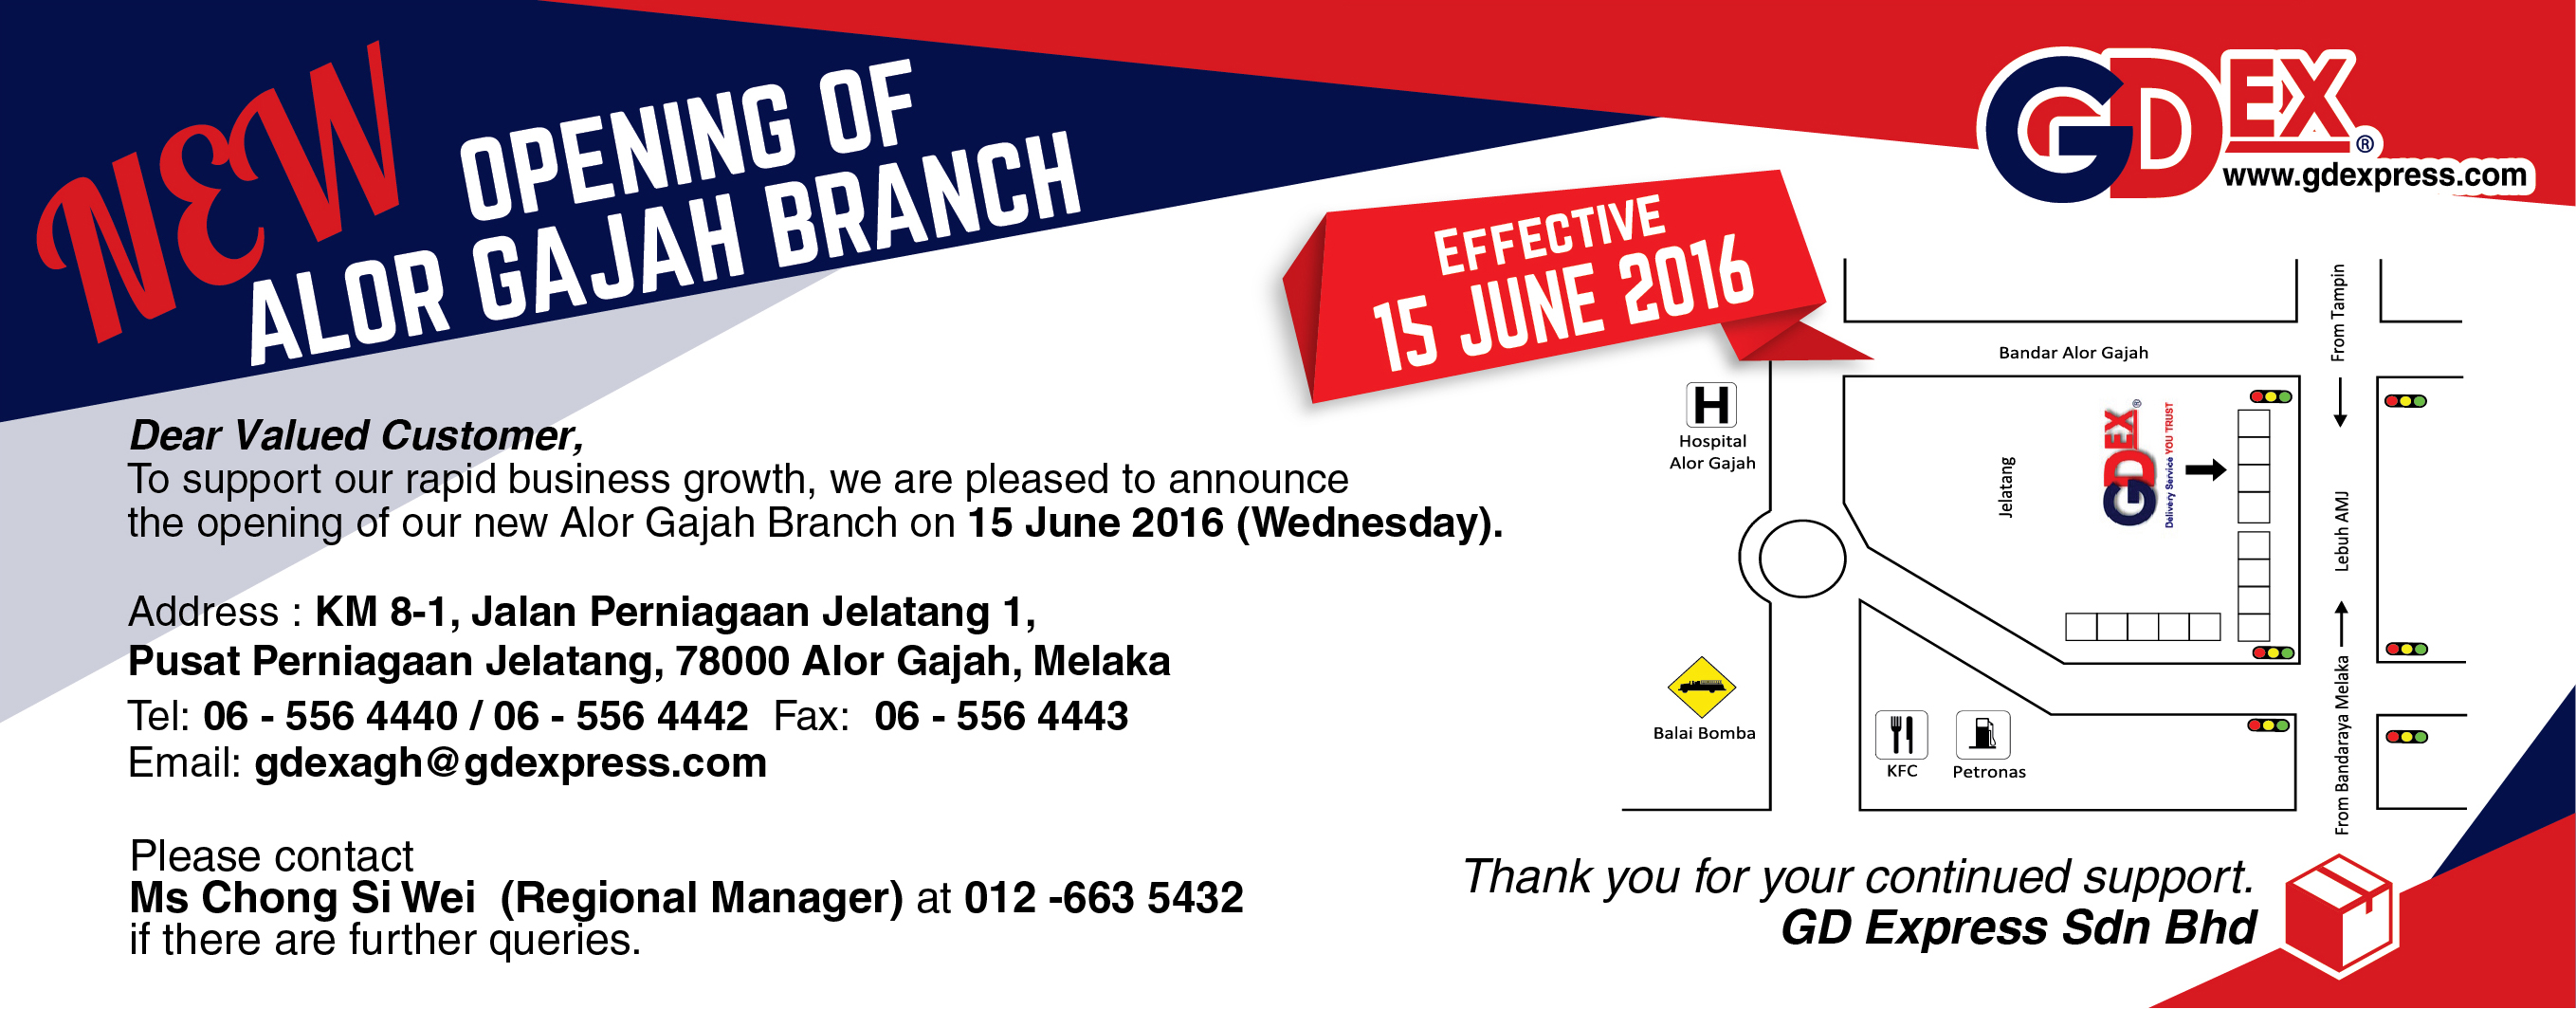 Opening of Alor Gajah Branch